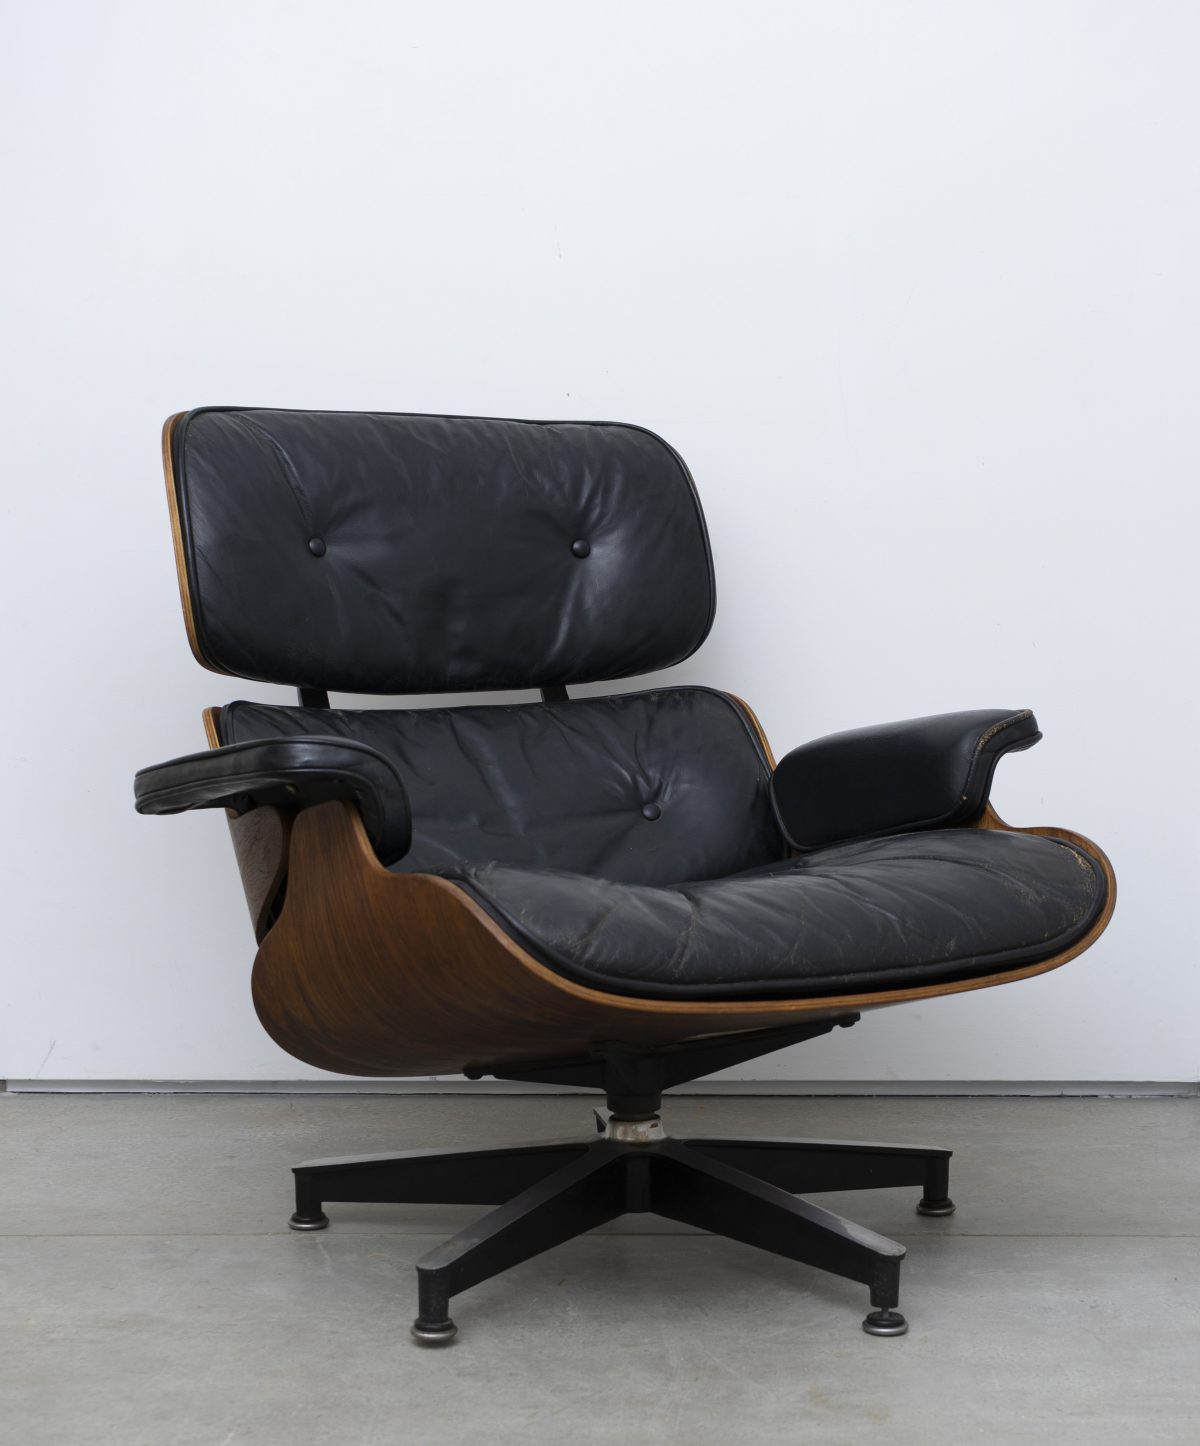 Charles and Ray Eames - Lounge 2